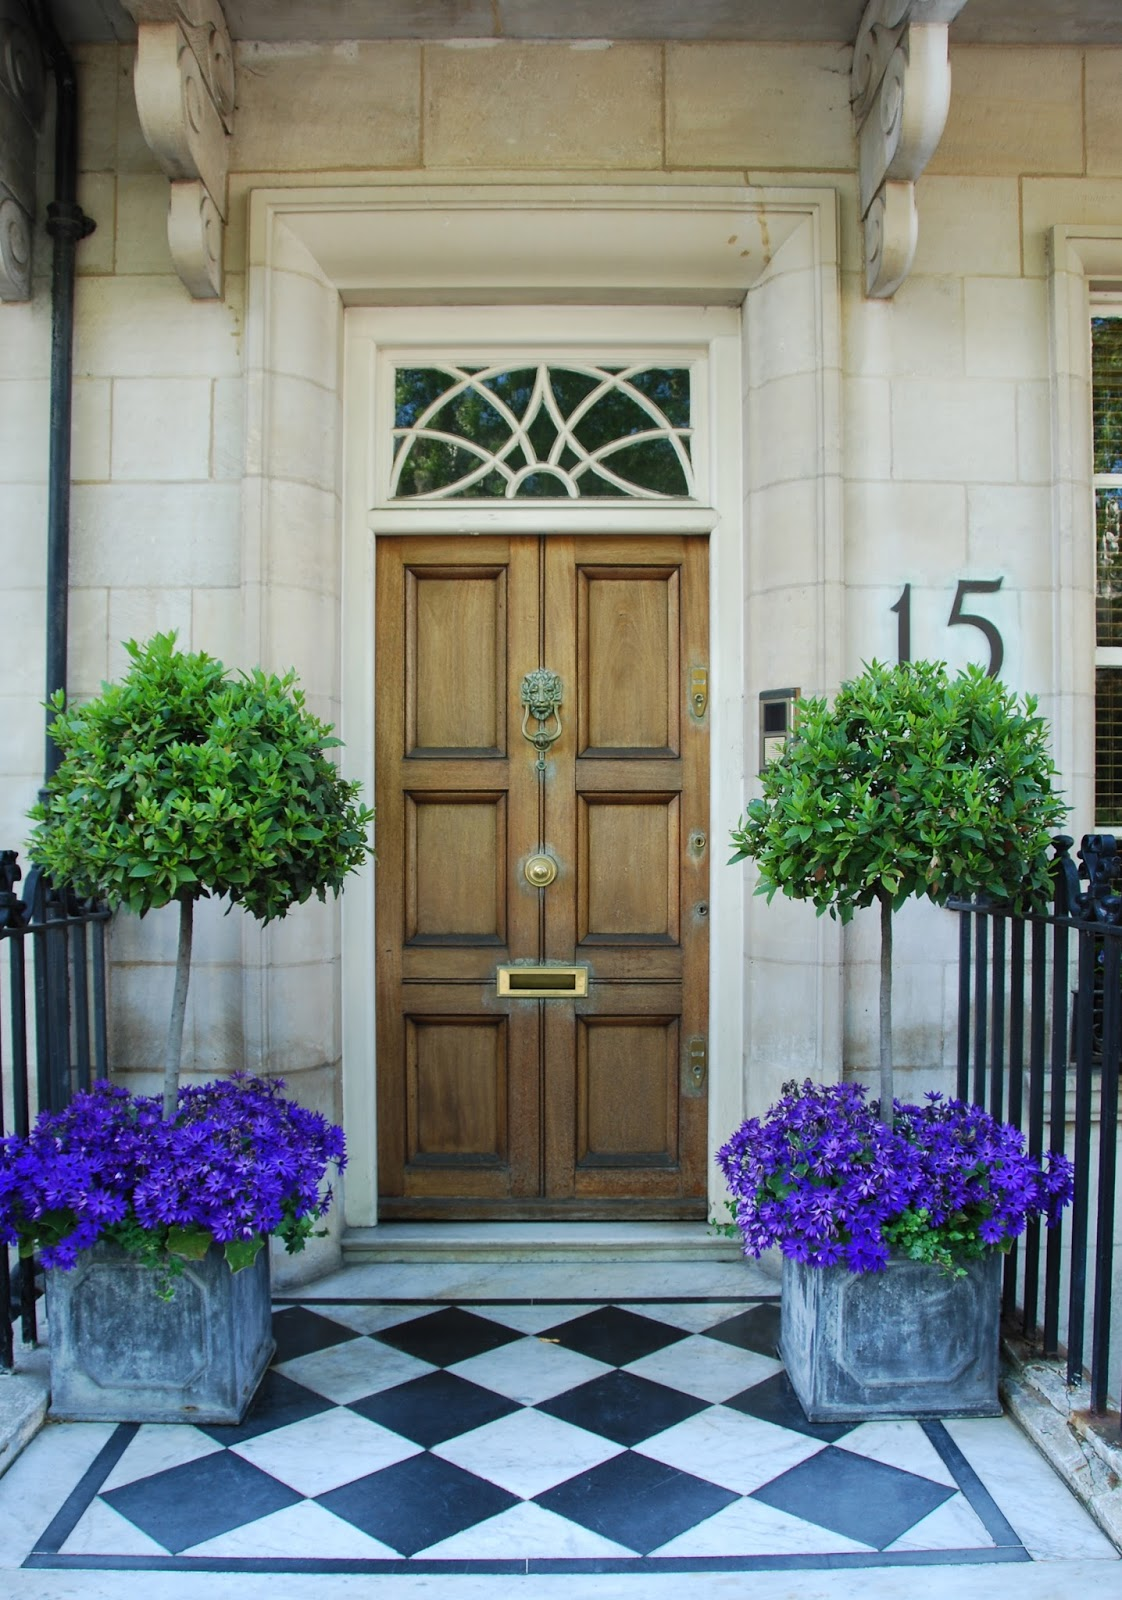 AD-Smart-Design-Front-Door-Planters-24